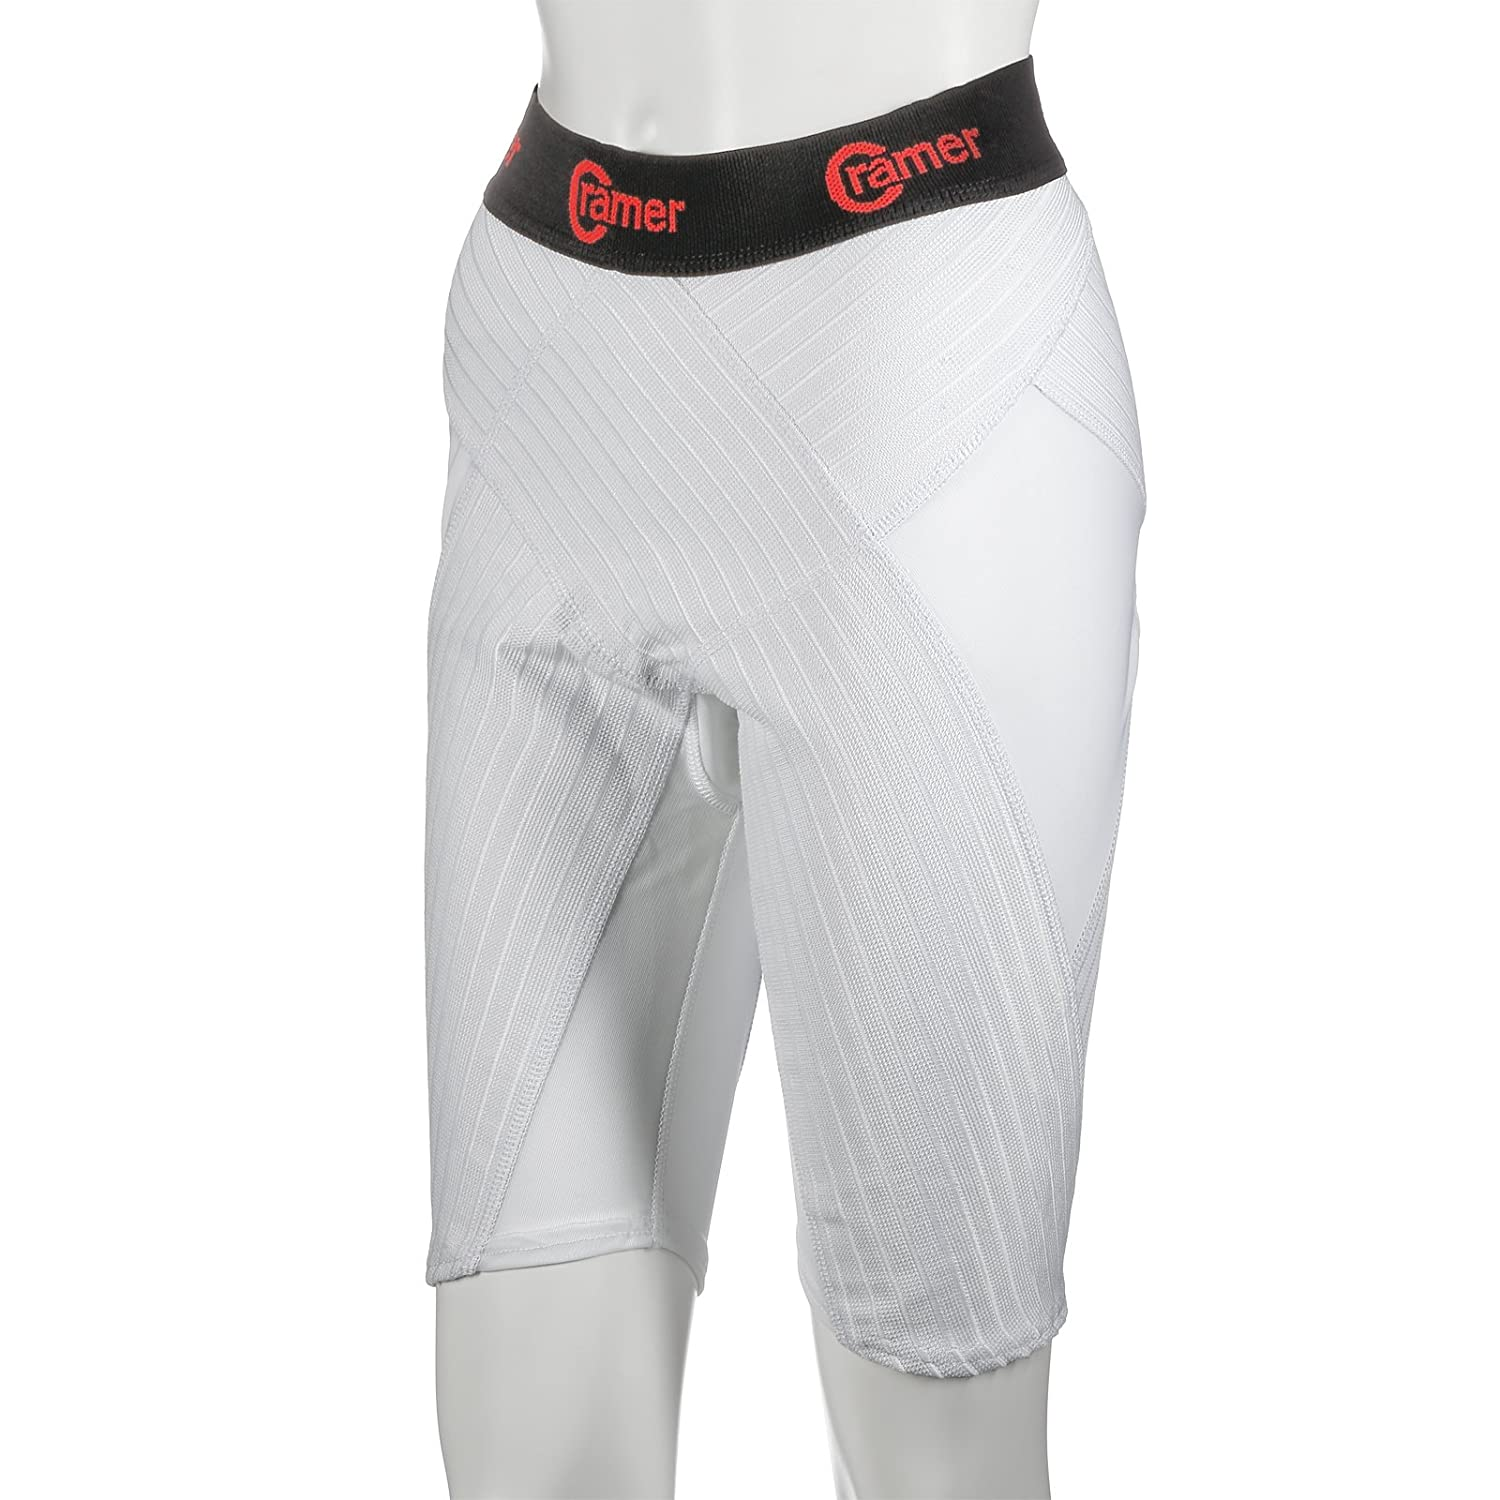 Enhances Athletic Performance Knee-Length Compression Shorts Improves Blood Circulation Cramer Performance Shorts for Core Muscle Compression and Support During Activity /& Recovery